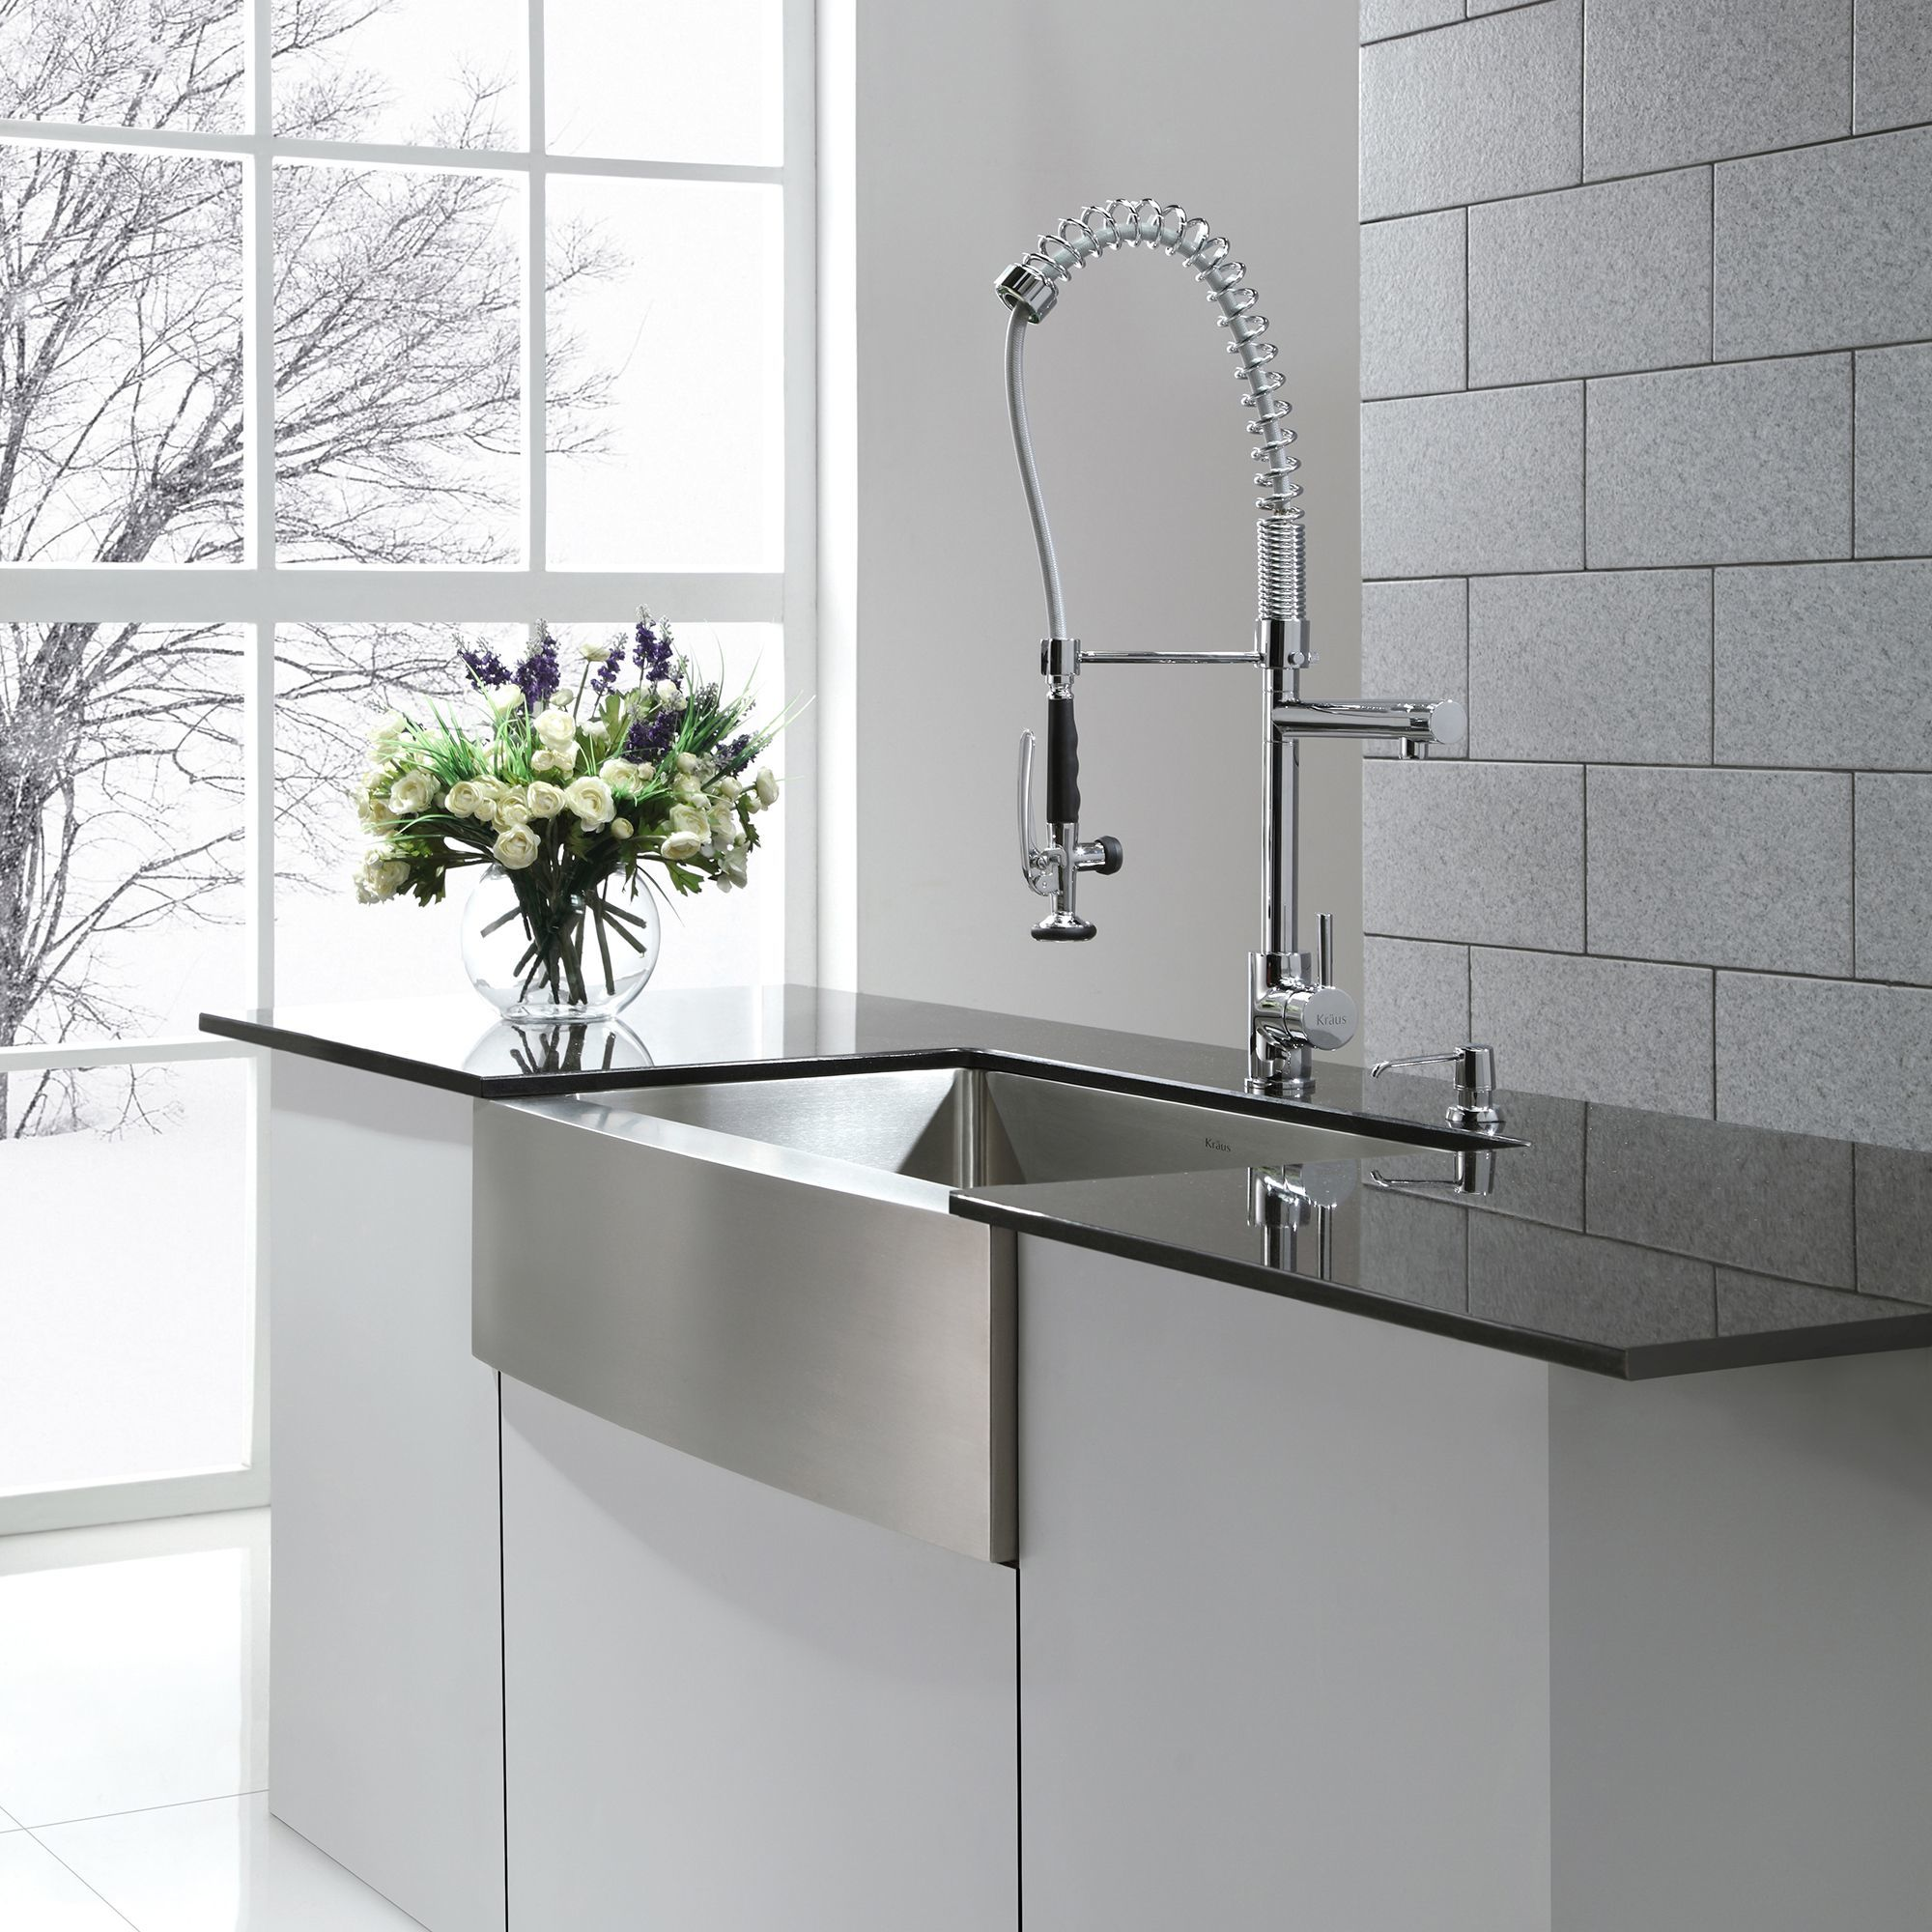 faucet photos best kraus kitchen single mateo ideas style kpf commercial i faucets colorful lever